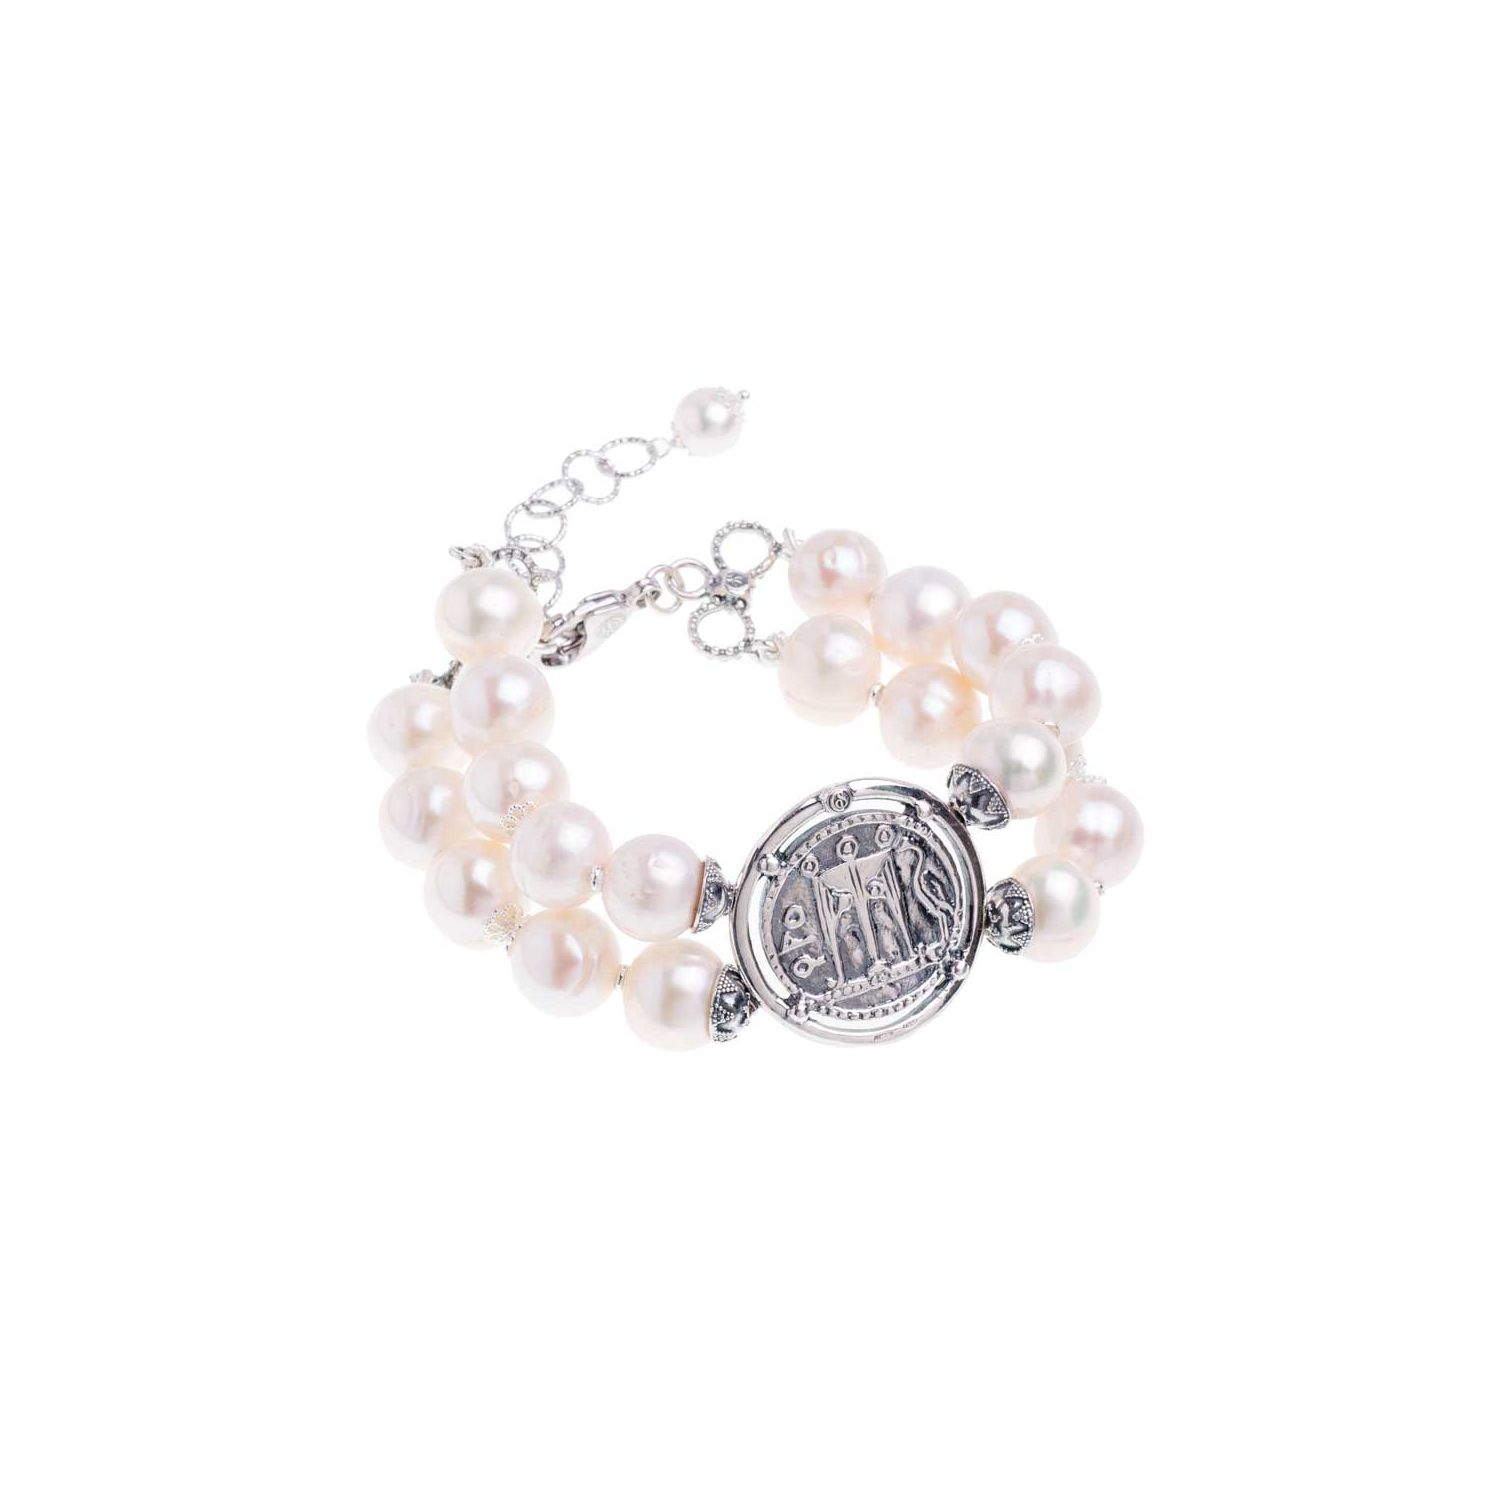 Pearls Bracelet with Coin (27557)